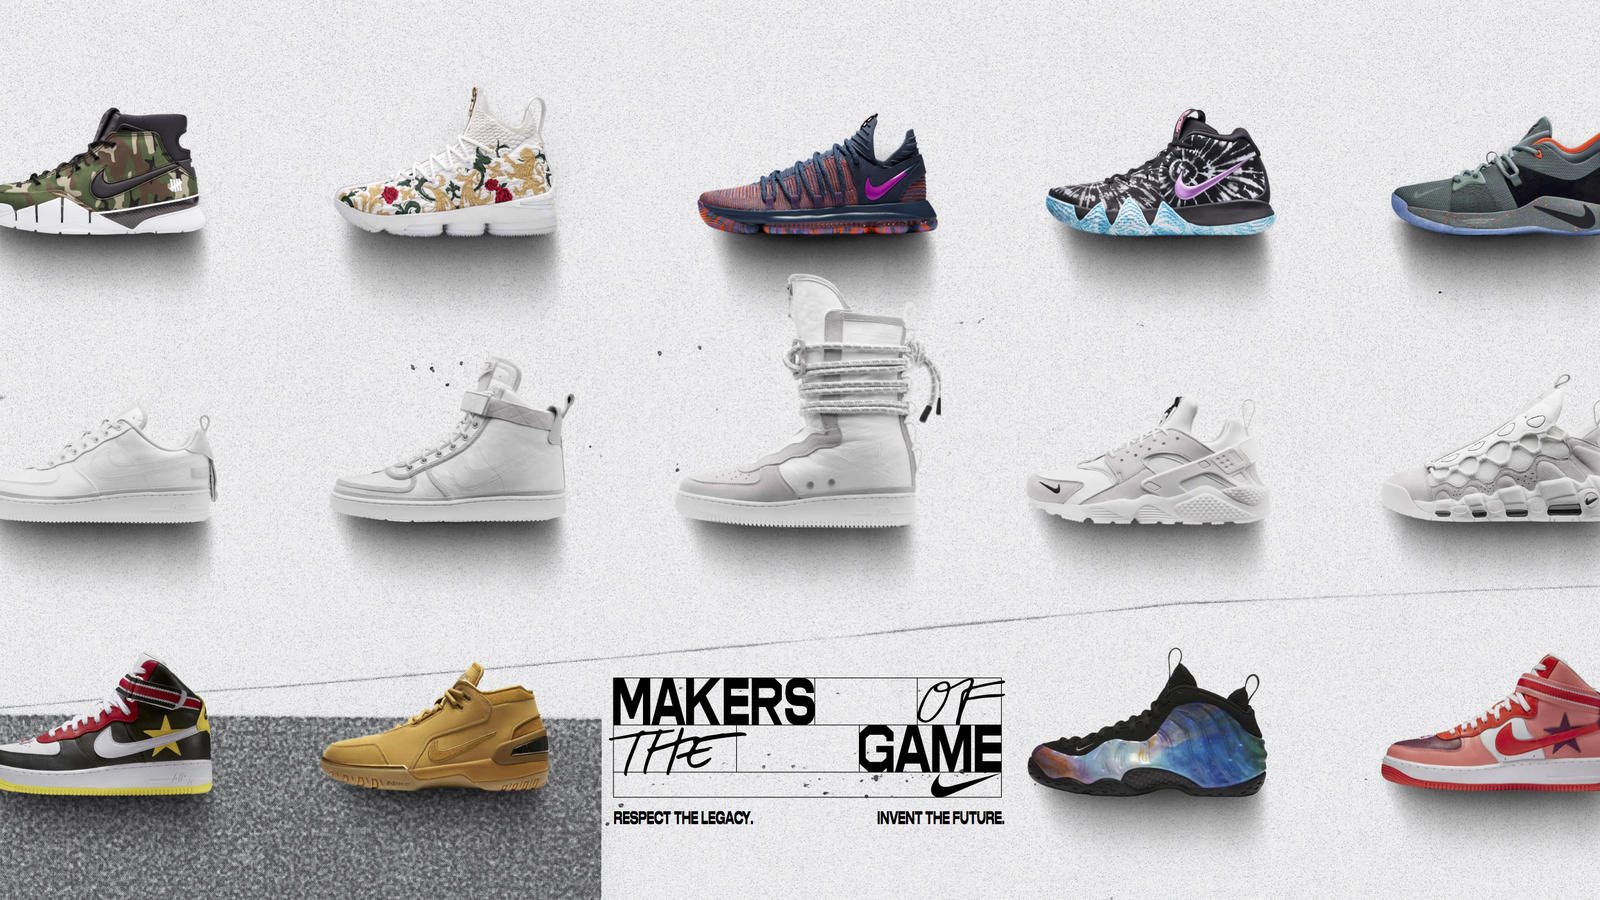 Nike makers of the game hd 1600